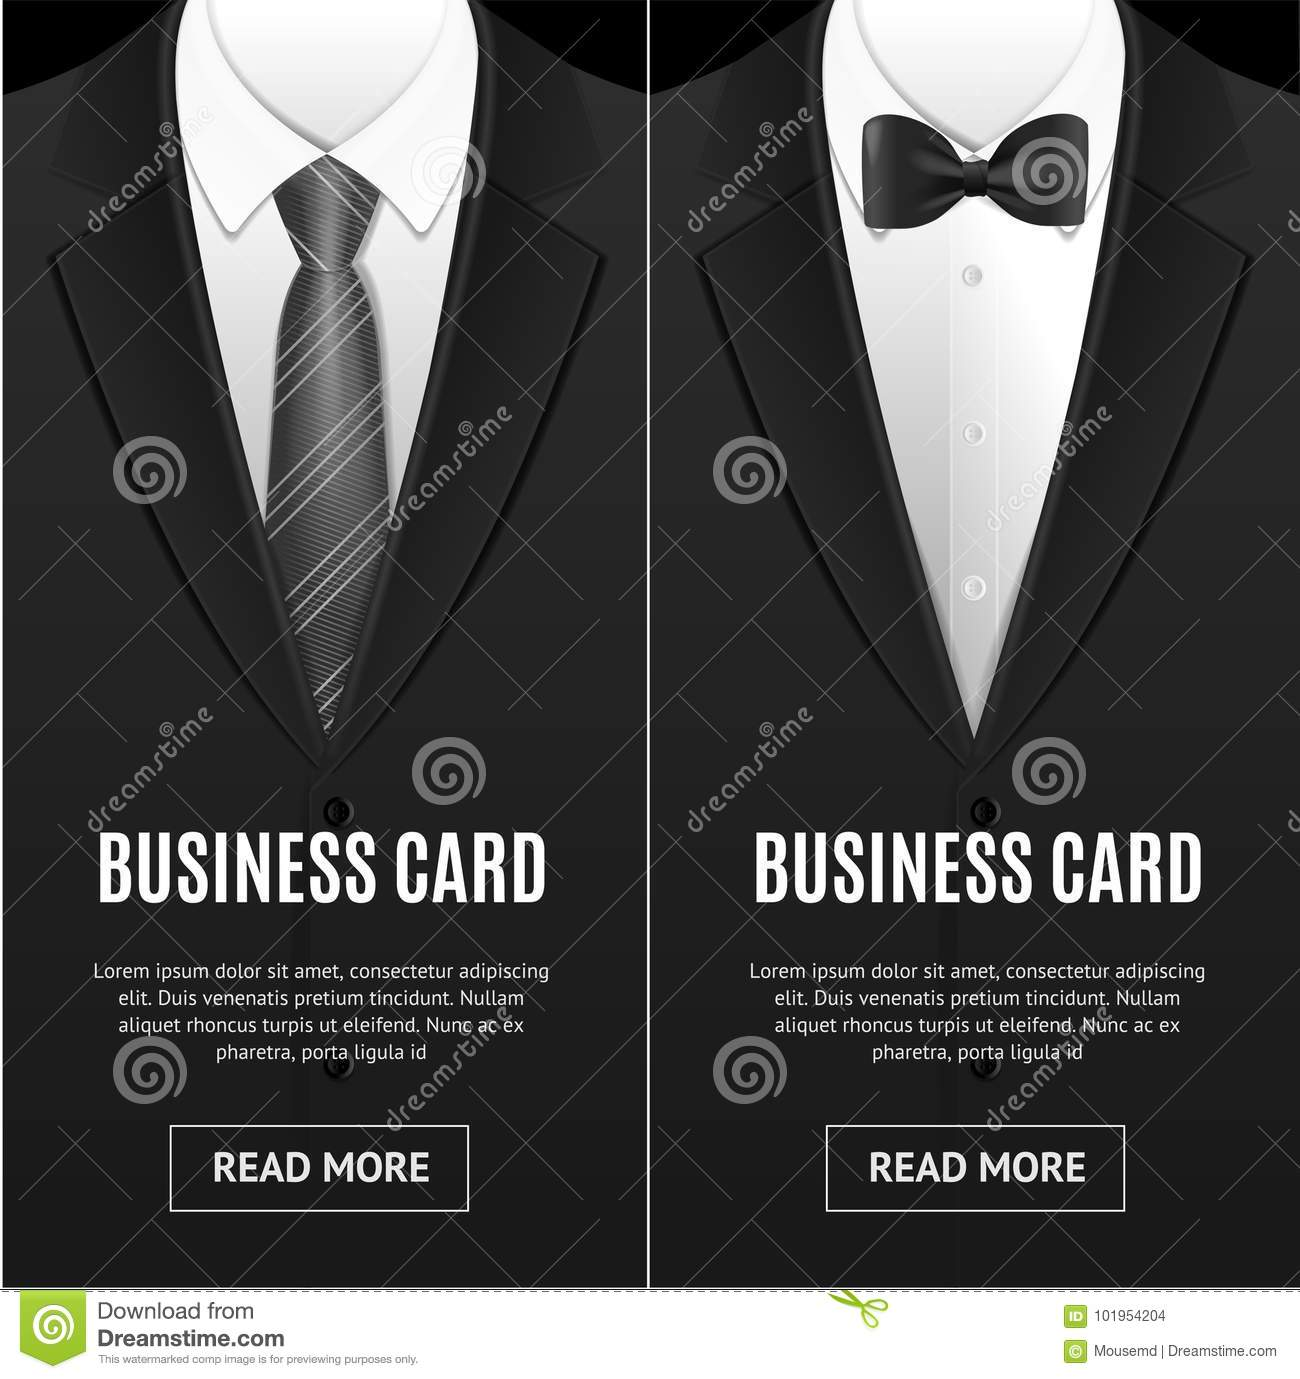 bc577aa53452 Business Card Bow Tie And Necktie Set. Vector Stock Vector ...